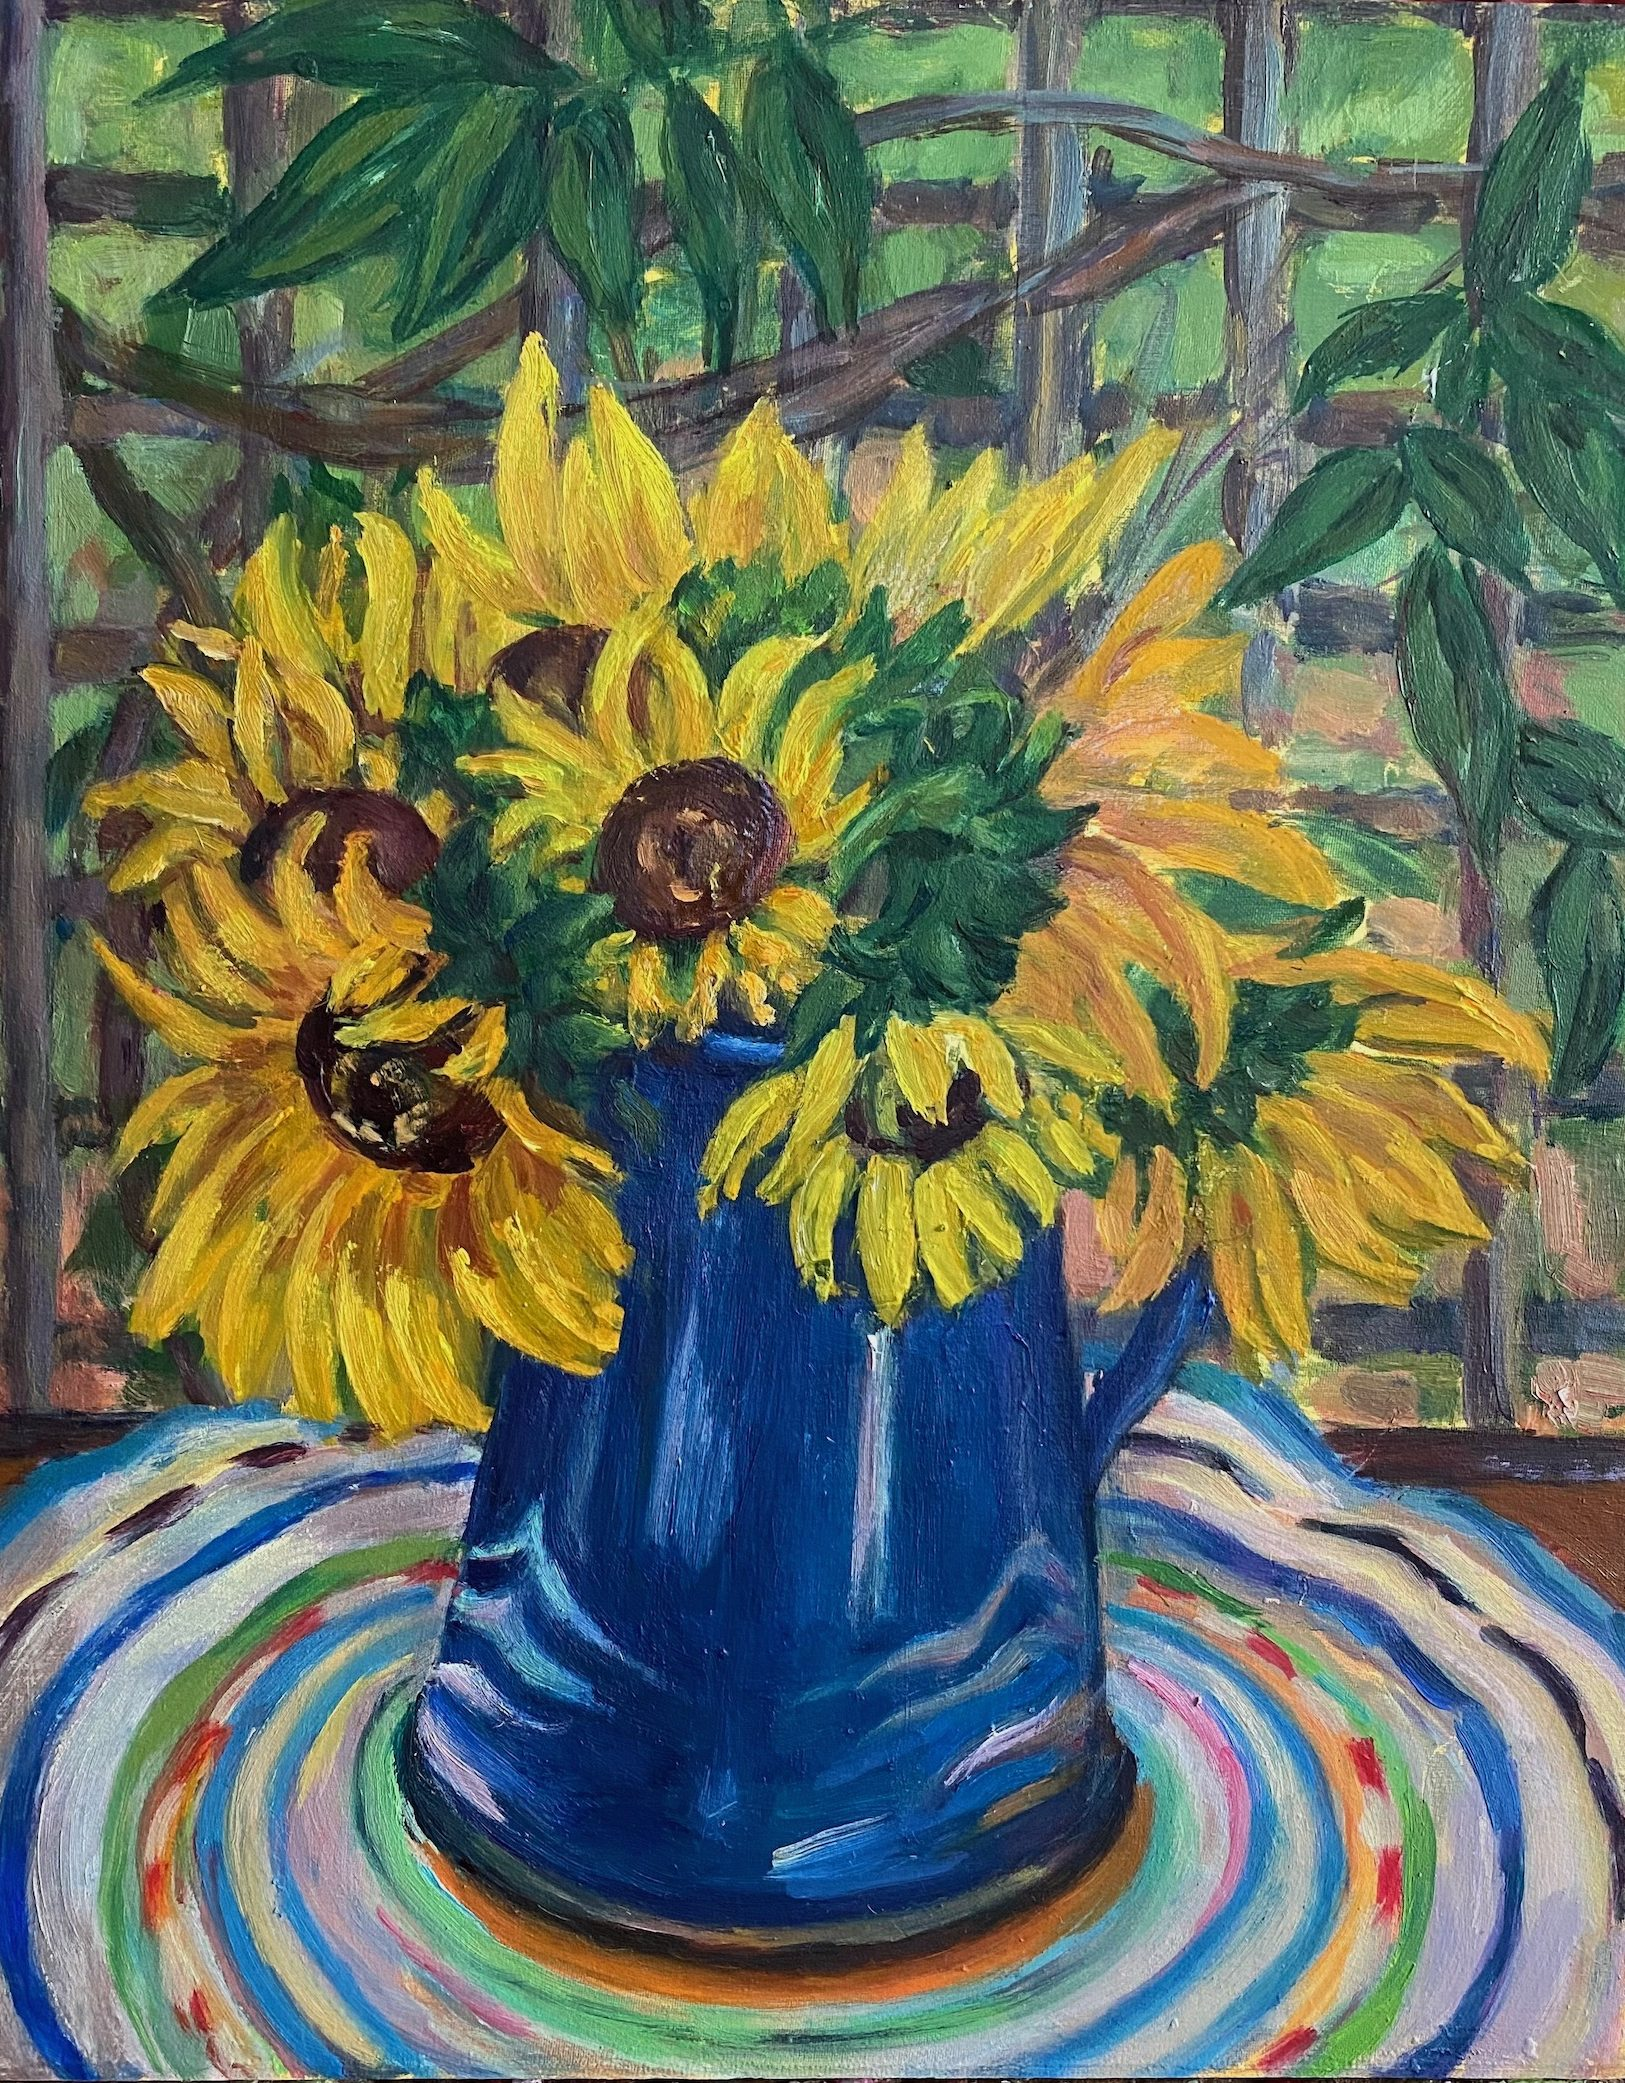 Sunflowers and Blue Coffee Pot, oil on panel, 10